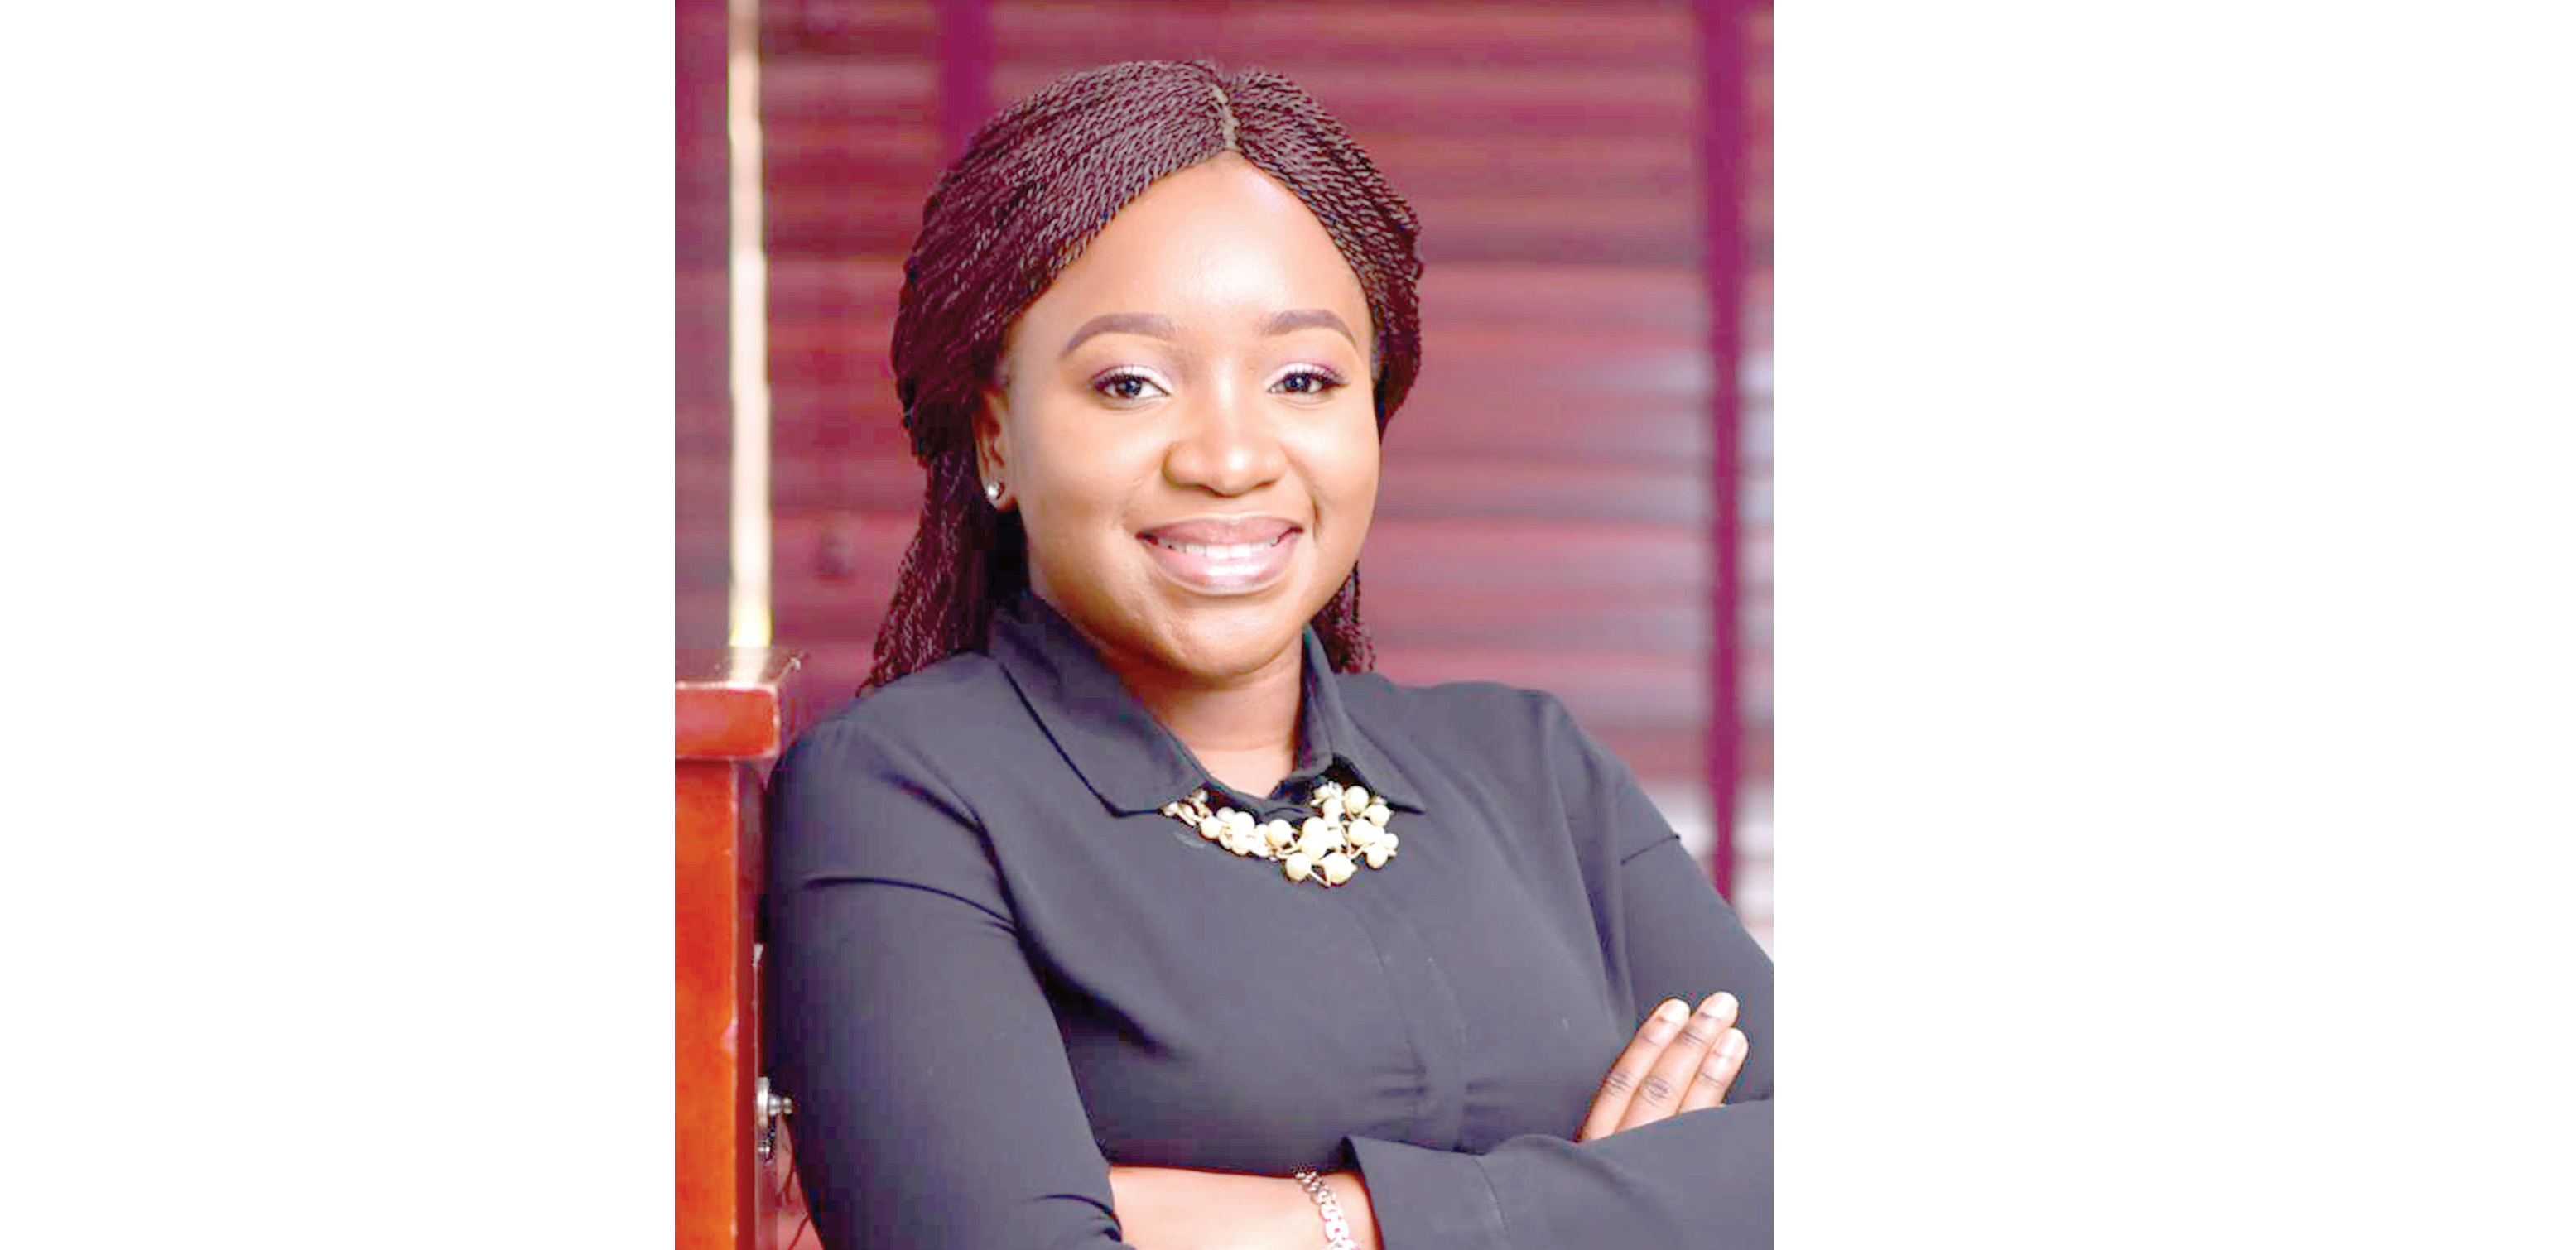 YOUNG LAWYERS' FORUM: 'My worry is lack of job for new wigs'